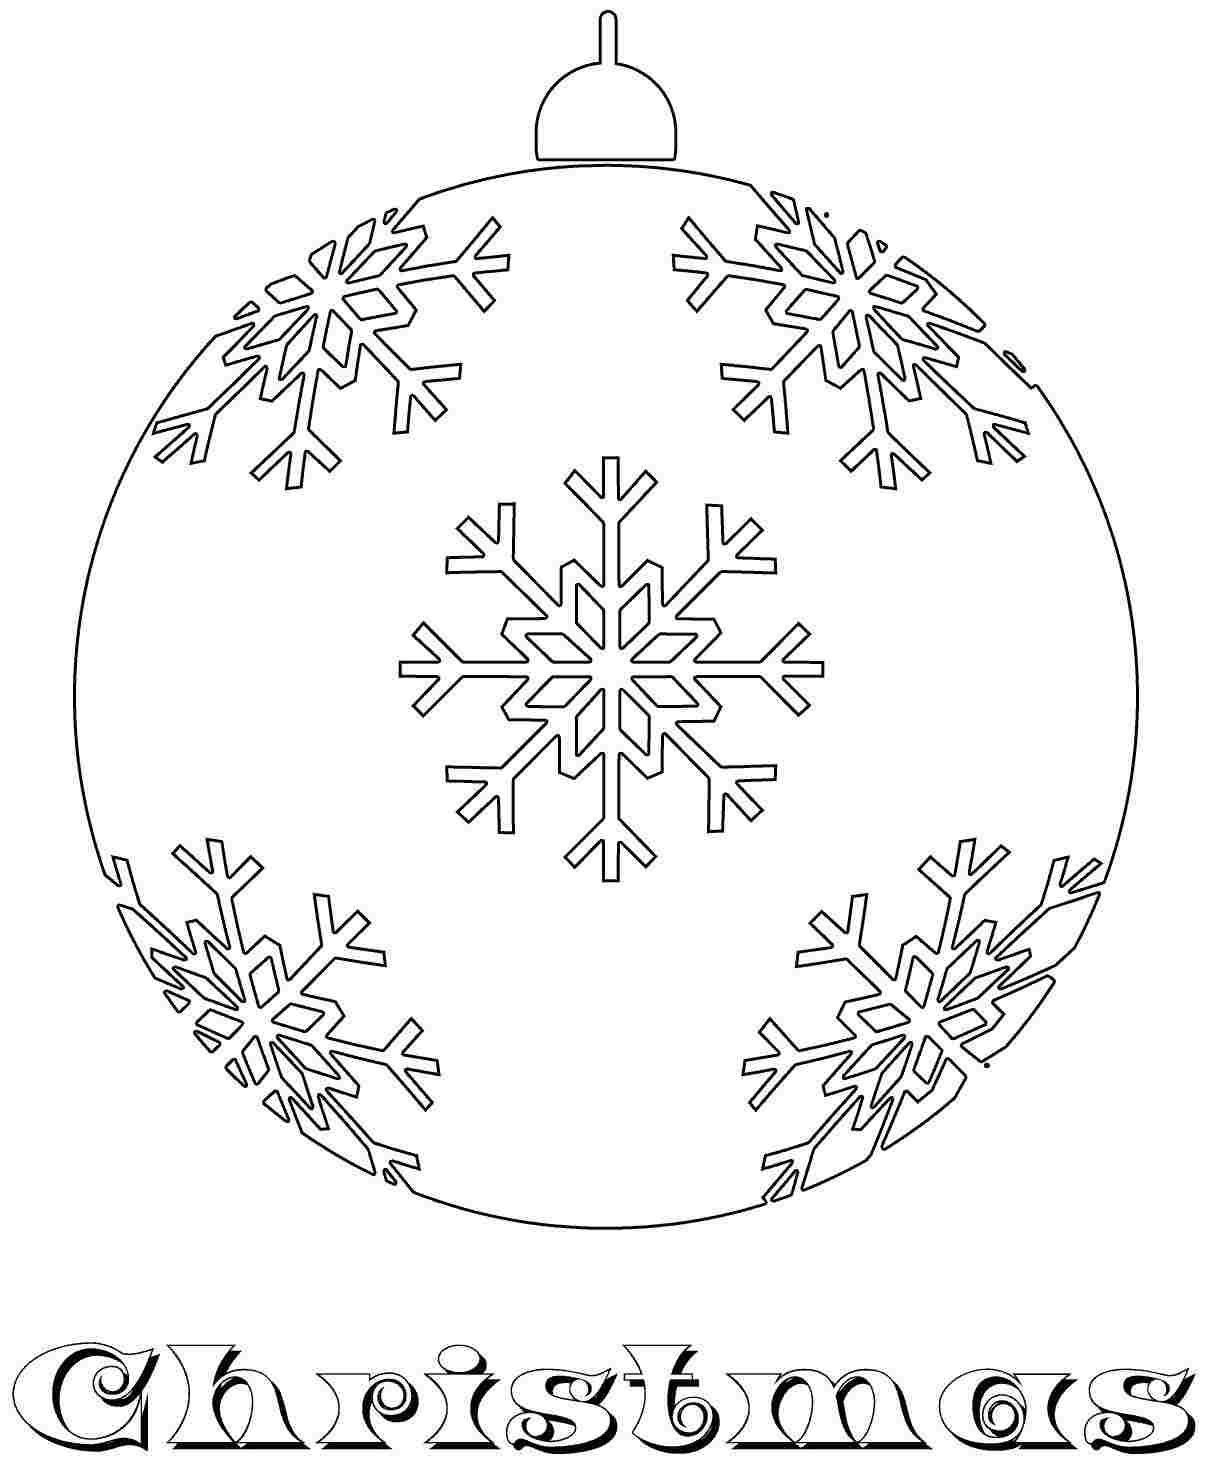 Free Christmas Ornament Coloring Sheets For Kids & Girls